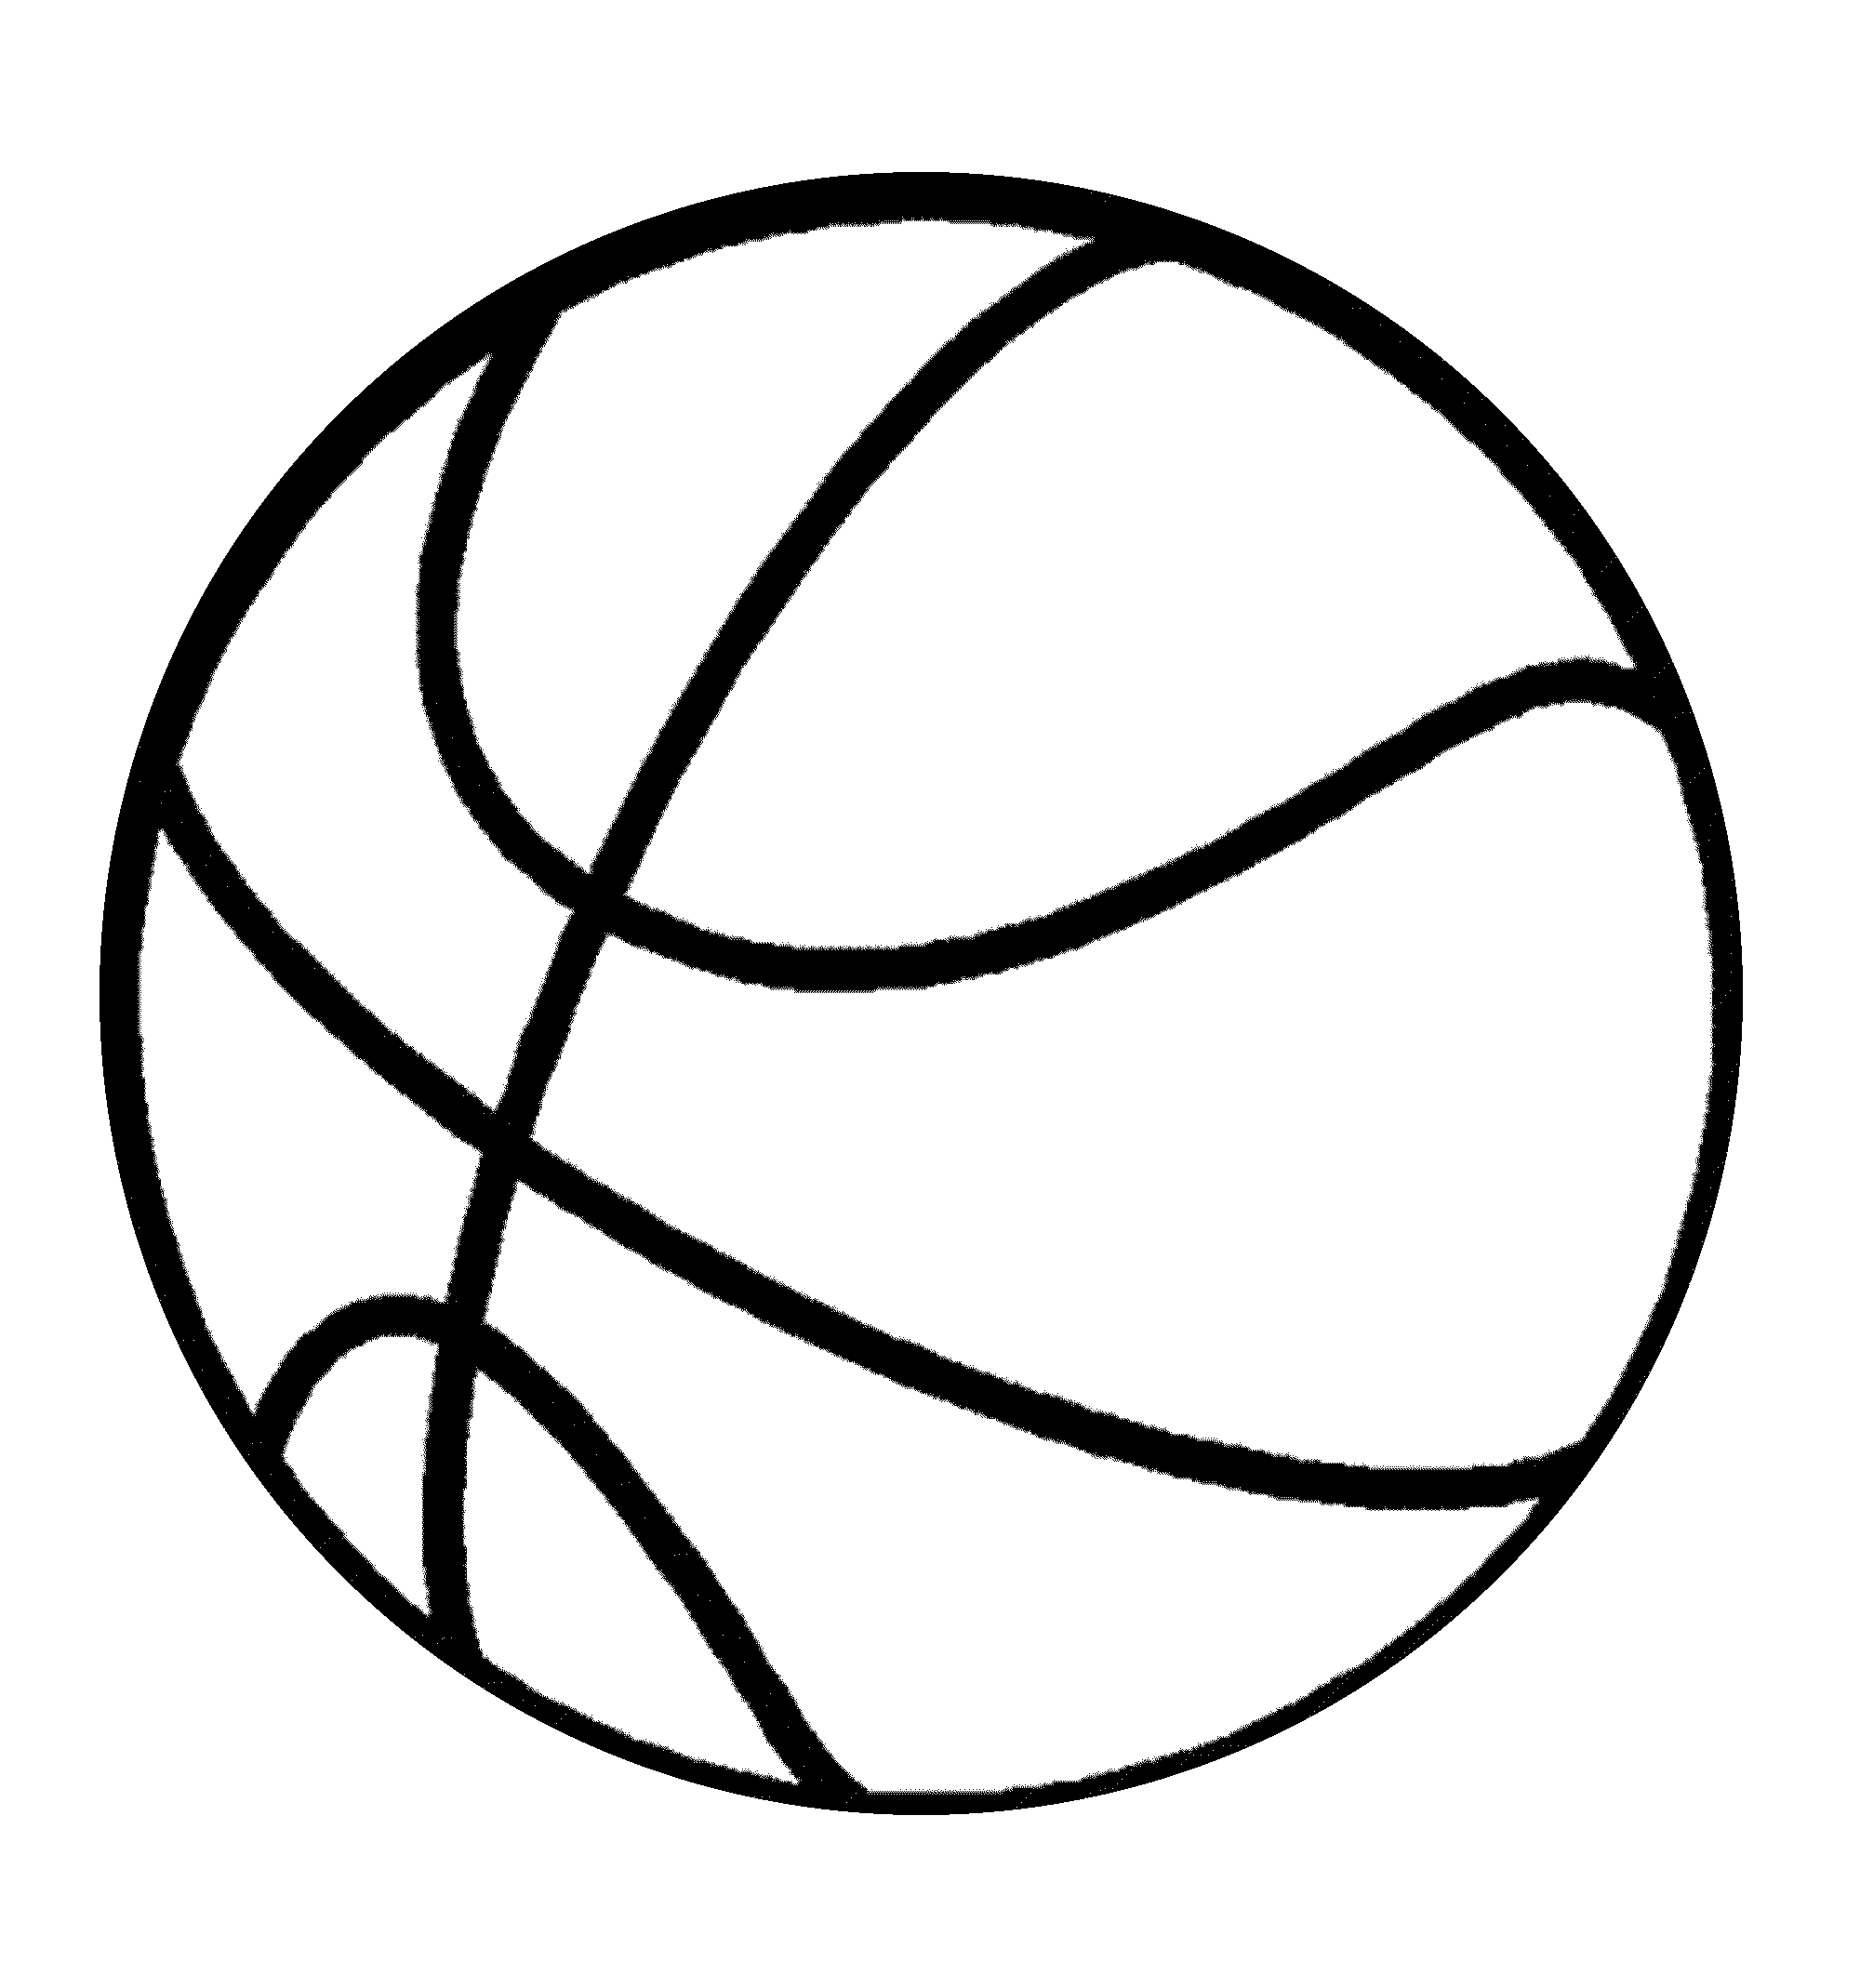 colouring sheet of ball basketball coloring pages to download and print for free sheet of ball colouring